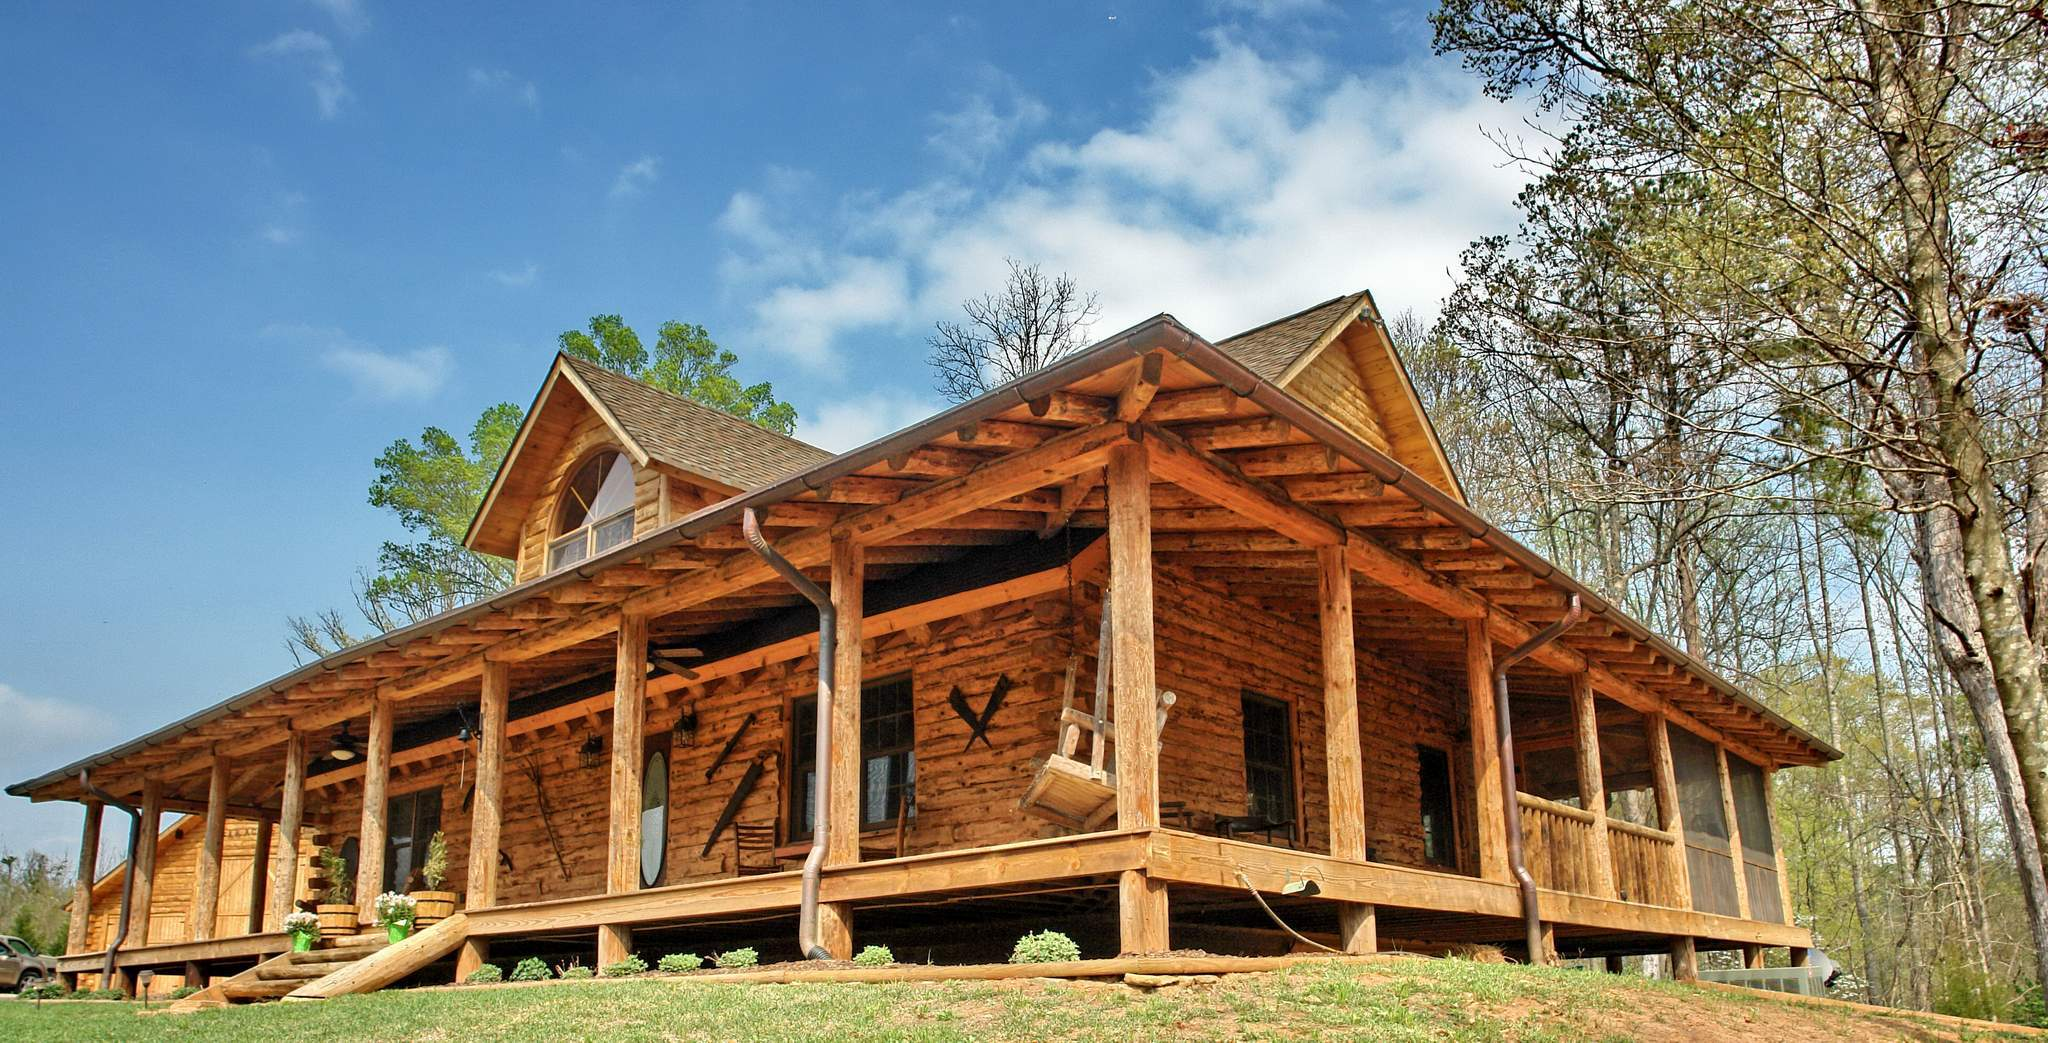 Model home country rustic dream home for Log cabin house plans with wrap around porches